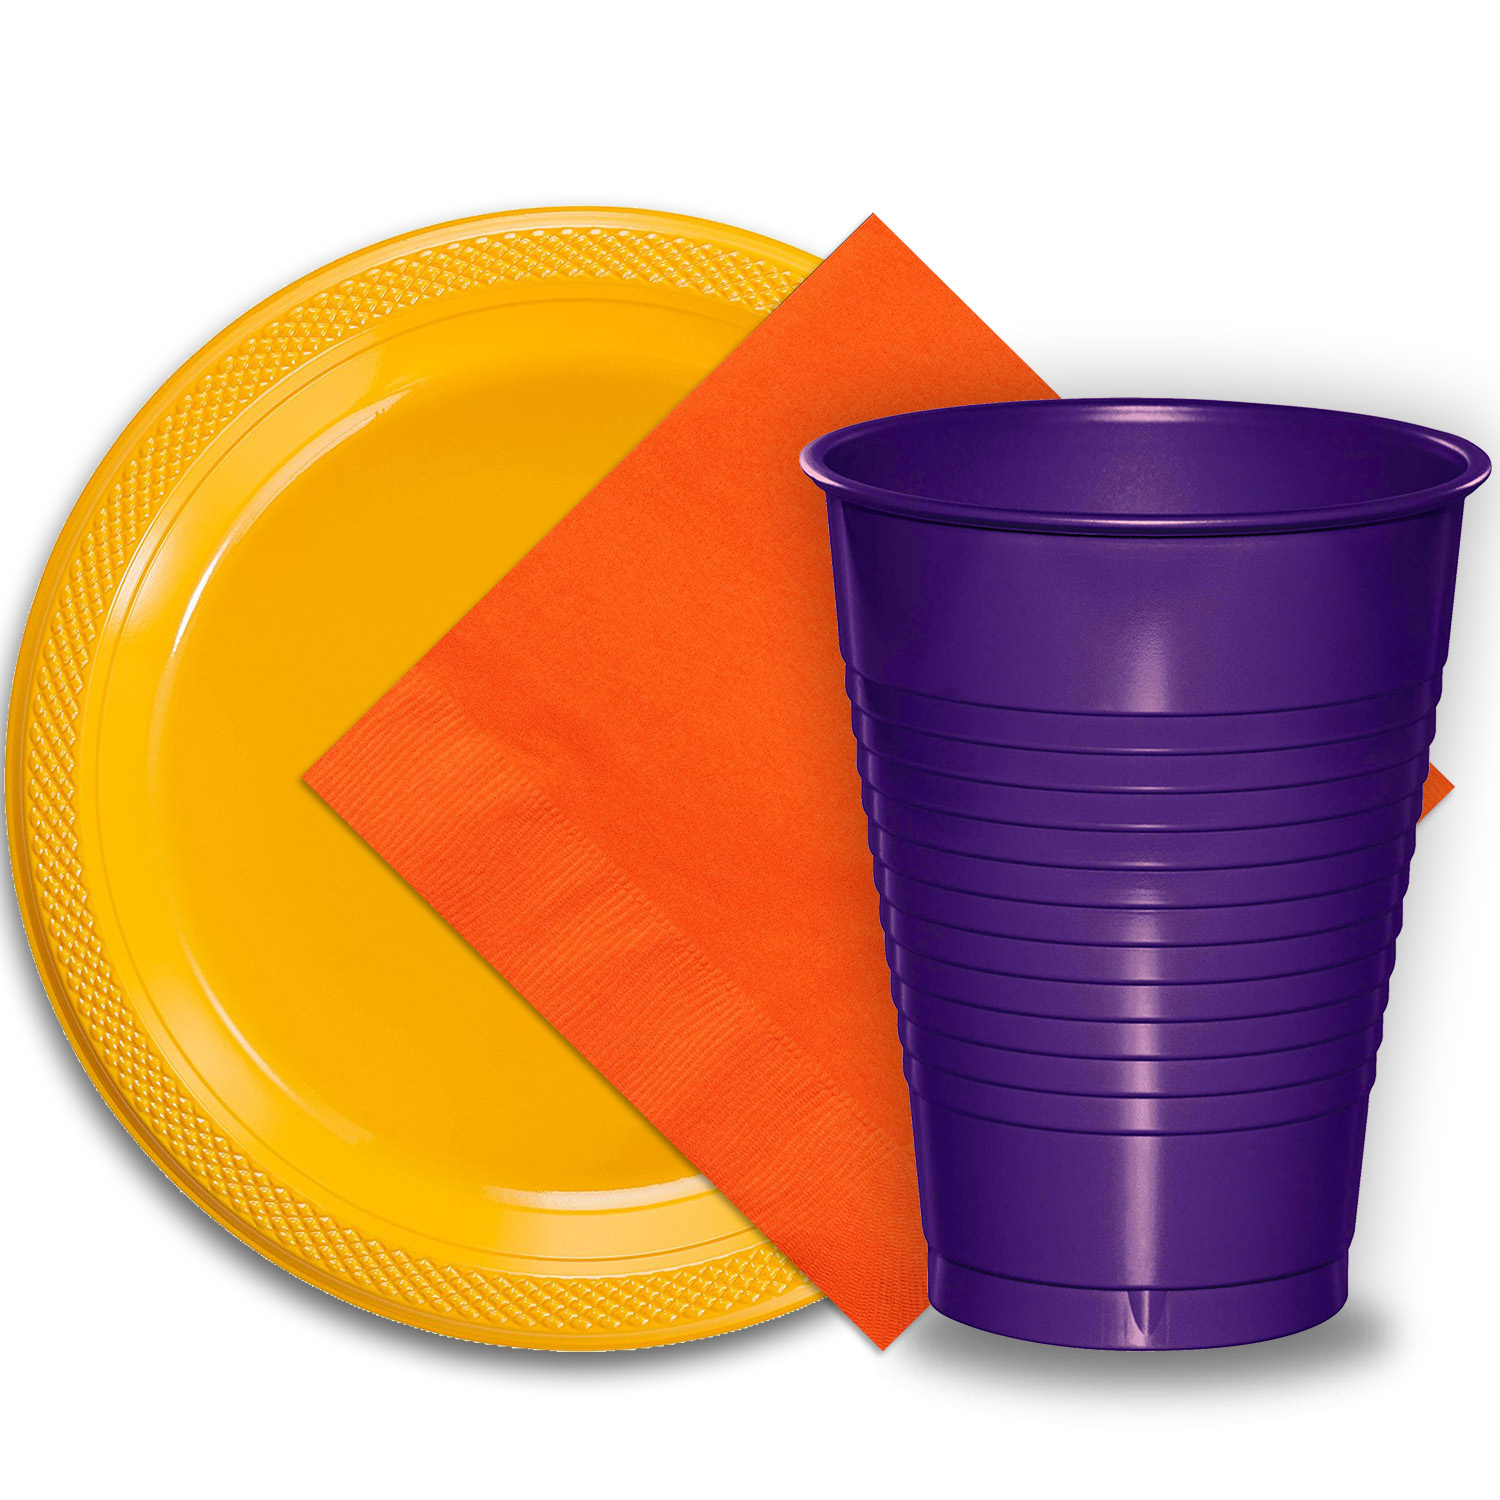 "50 Yellow Plastic Plates (9""), 50 Purple Plastic Cups (12 oz.), and 50 Orange Paper Napkins, Dazzelling Colored Disposable Party Supplies Tableware Set for Fifty Guests."